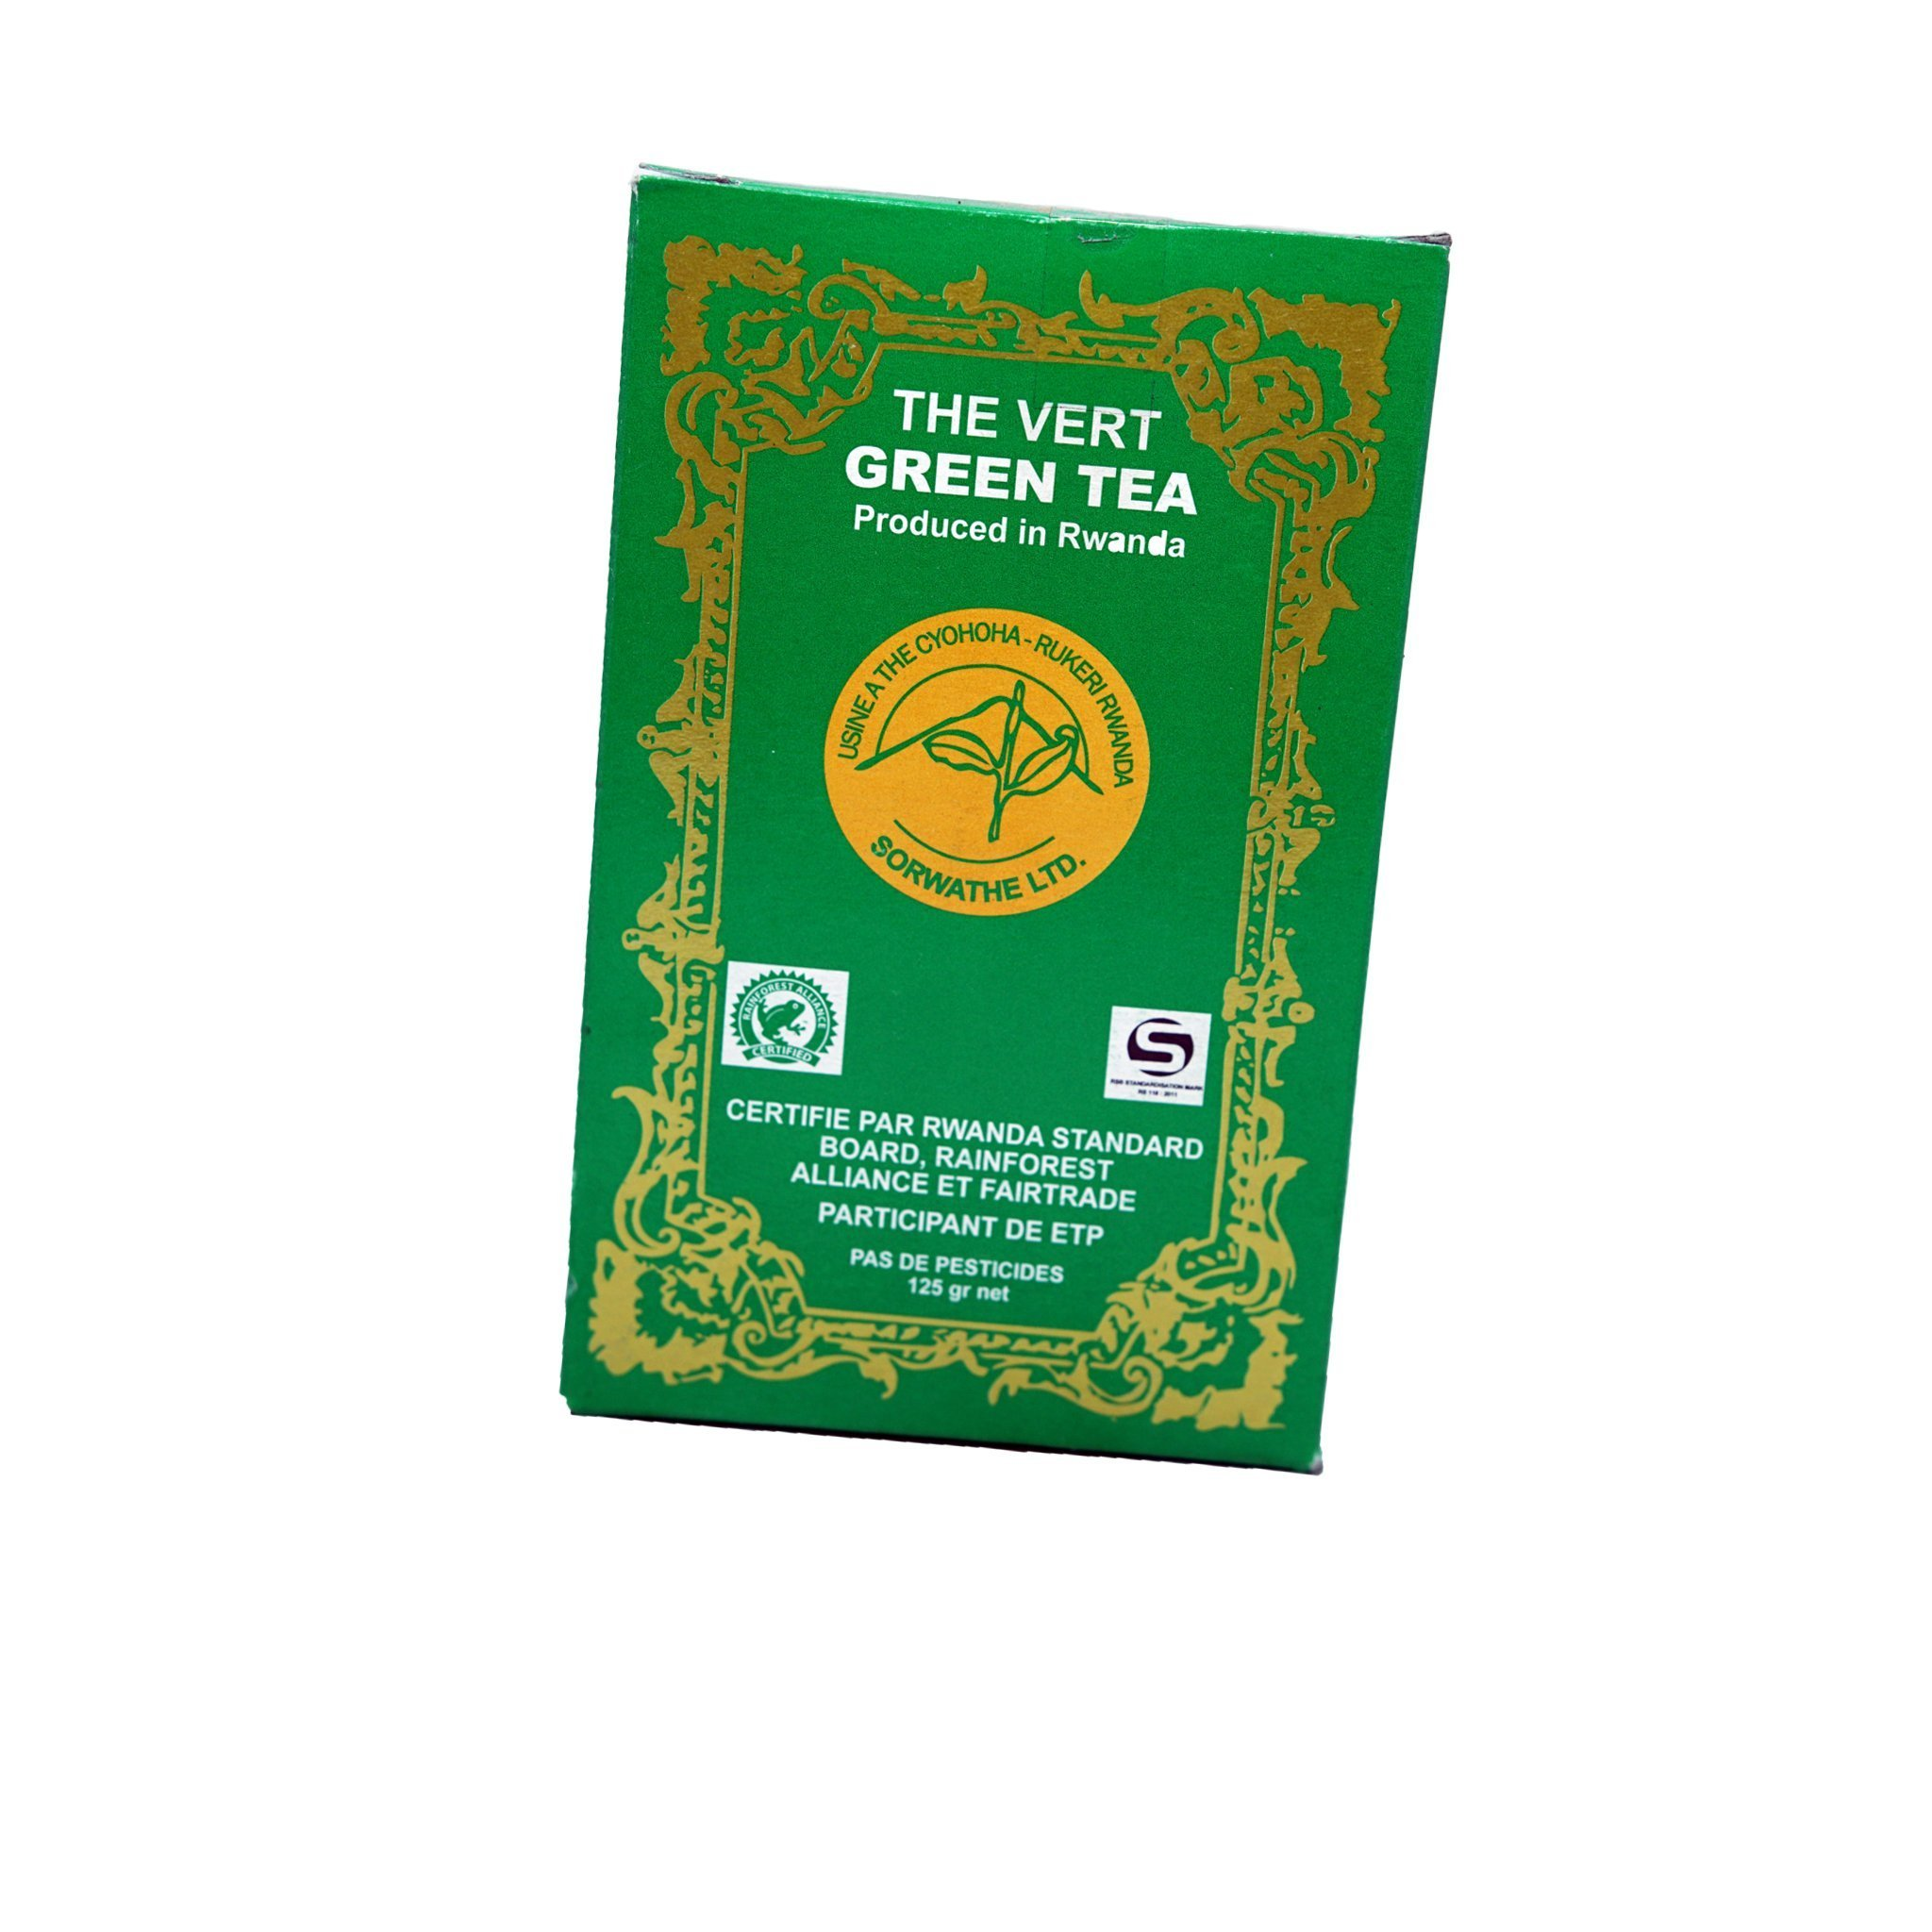 The Vert/ Green Tea 125 gr Price: 2500 Rwf Delivery Fees: 1000 Rwf